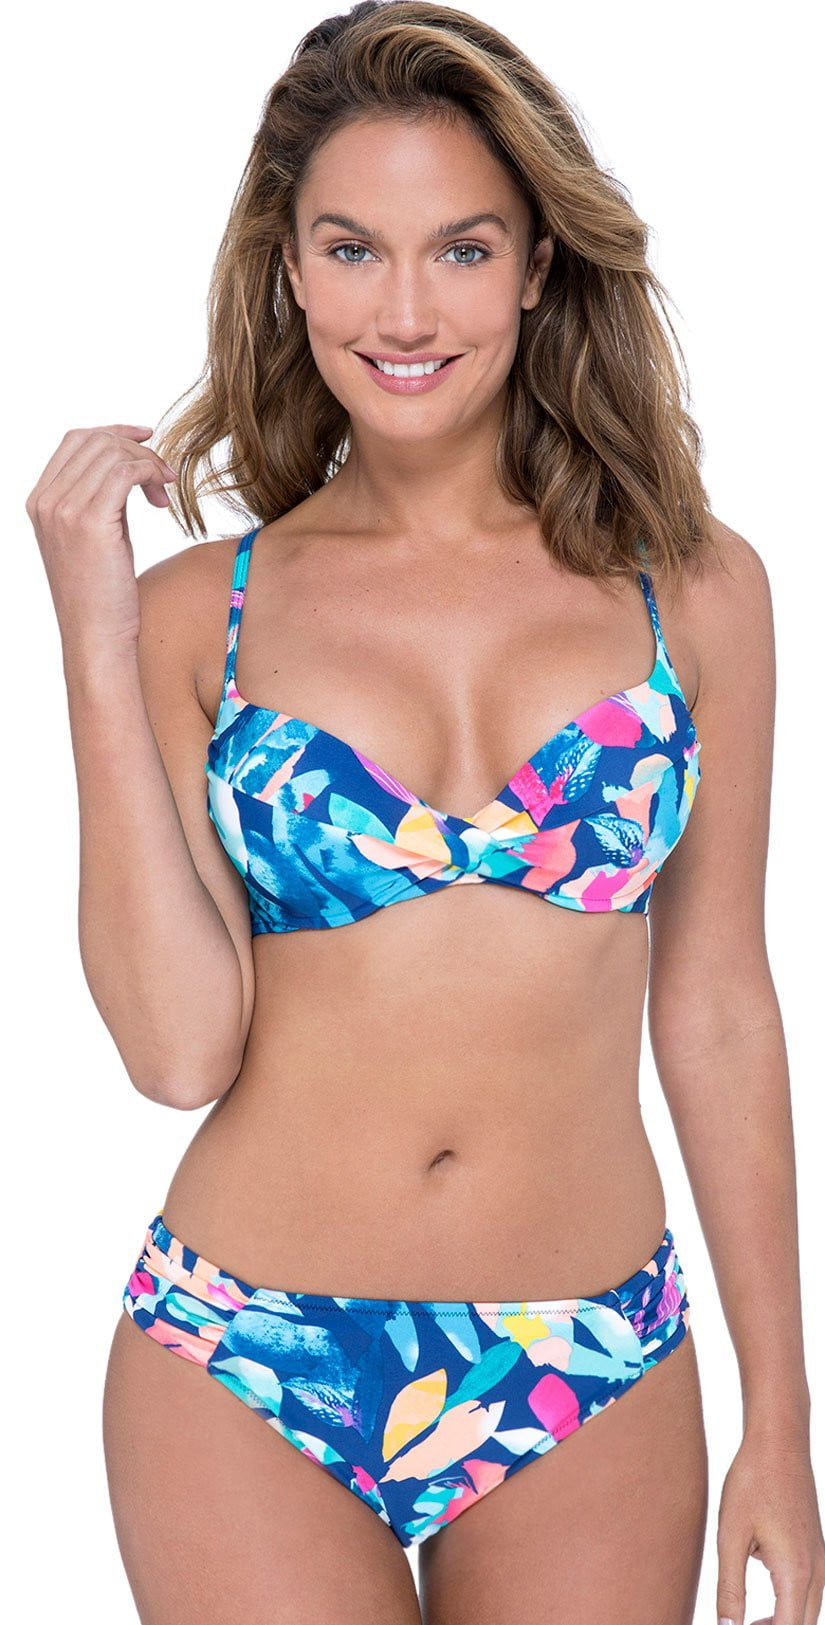 Profile By Gottex Bermuda Breeze Bikini Top E931 1B50 080: